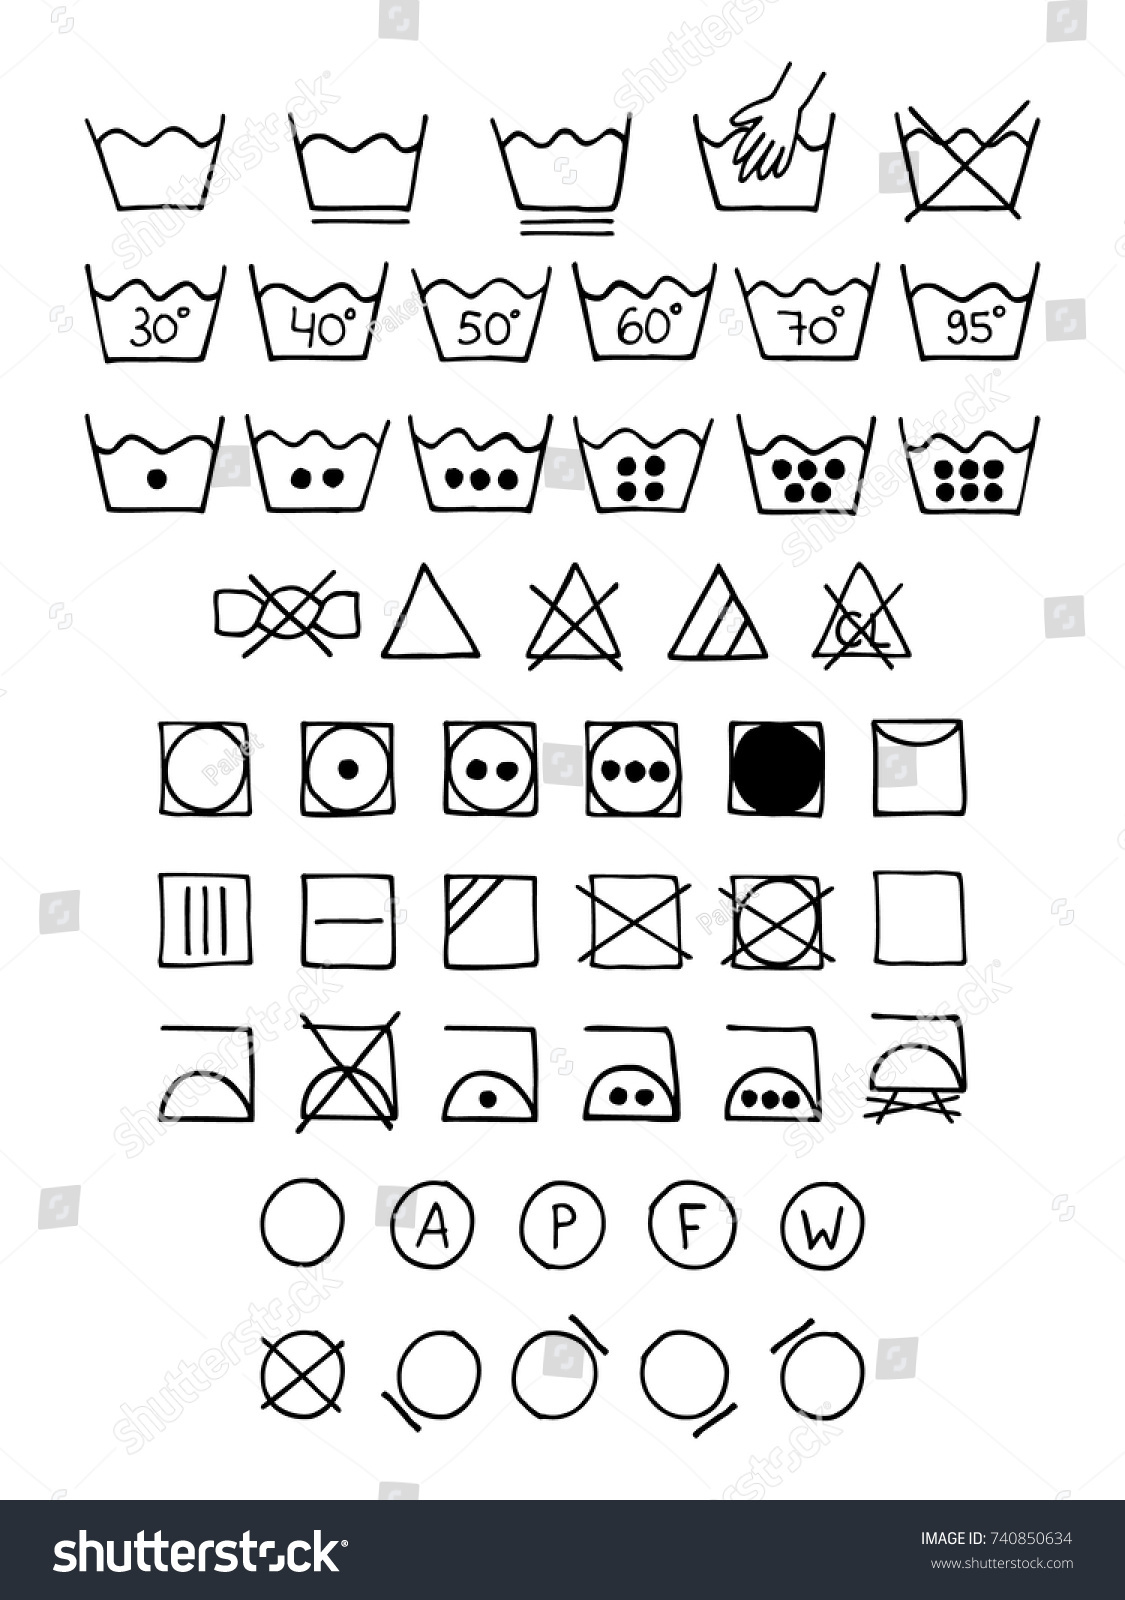 Laundry instructions to print the label for your own laundry laundry instructions doodle laundry symbols hand drawn scribble washing icons clothing and fabric maintenance instructions buycottarizona